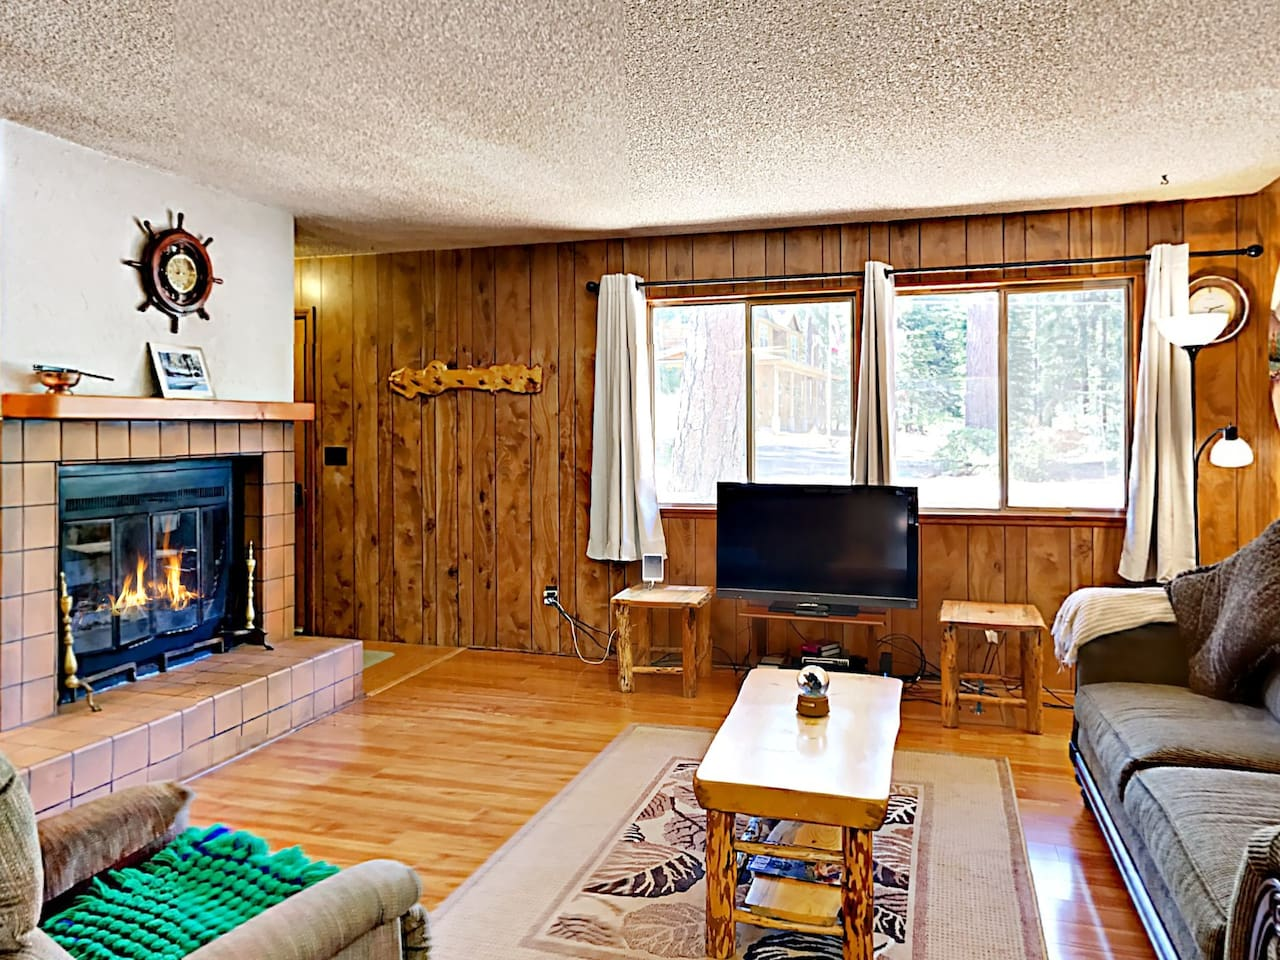 Welcome to Tahoe City! Gather around the fireplace and enjoy a movie night on the flat screen TV.